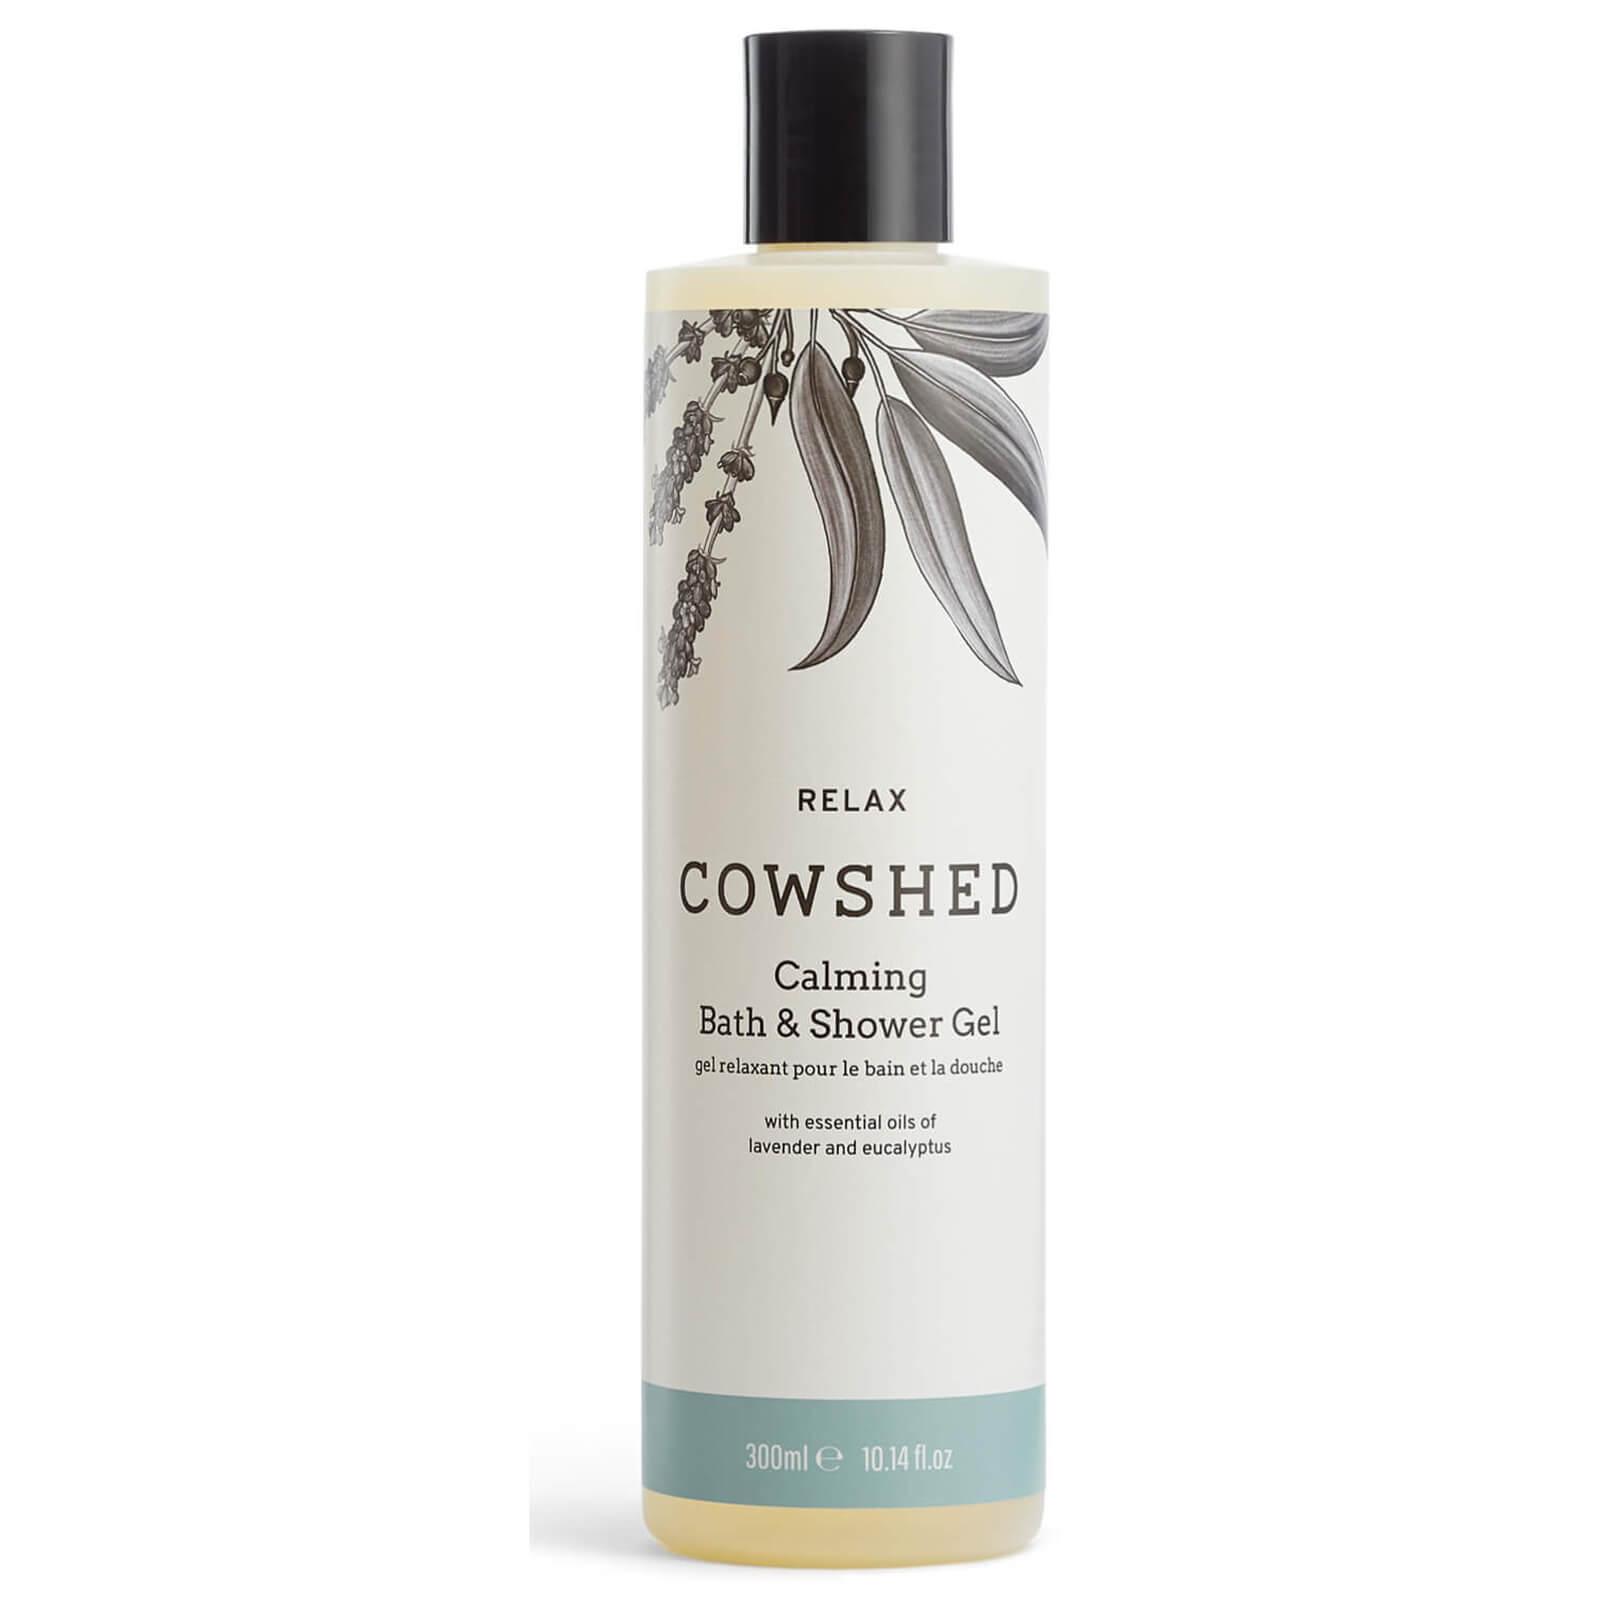 Cowshed RELAX Calming Bath & Shower Gel 10.5oz (300ml)